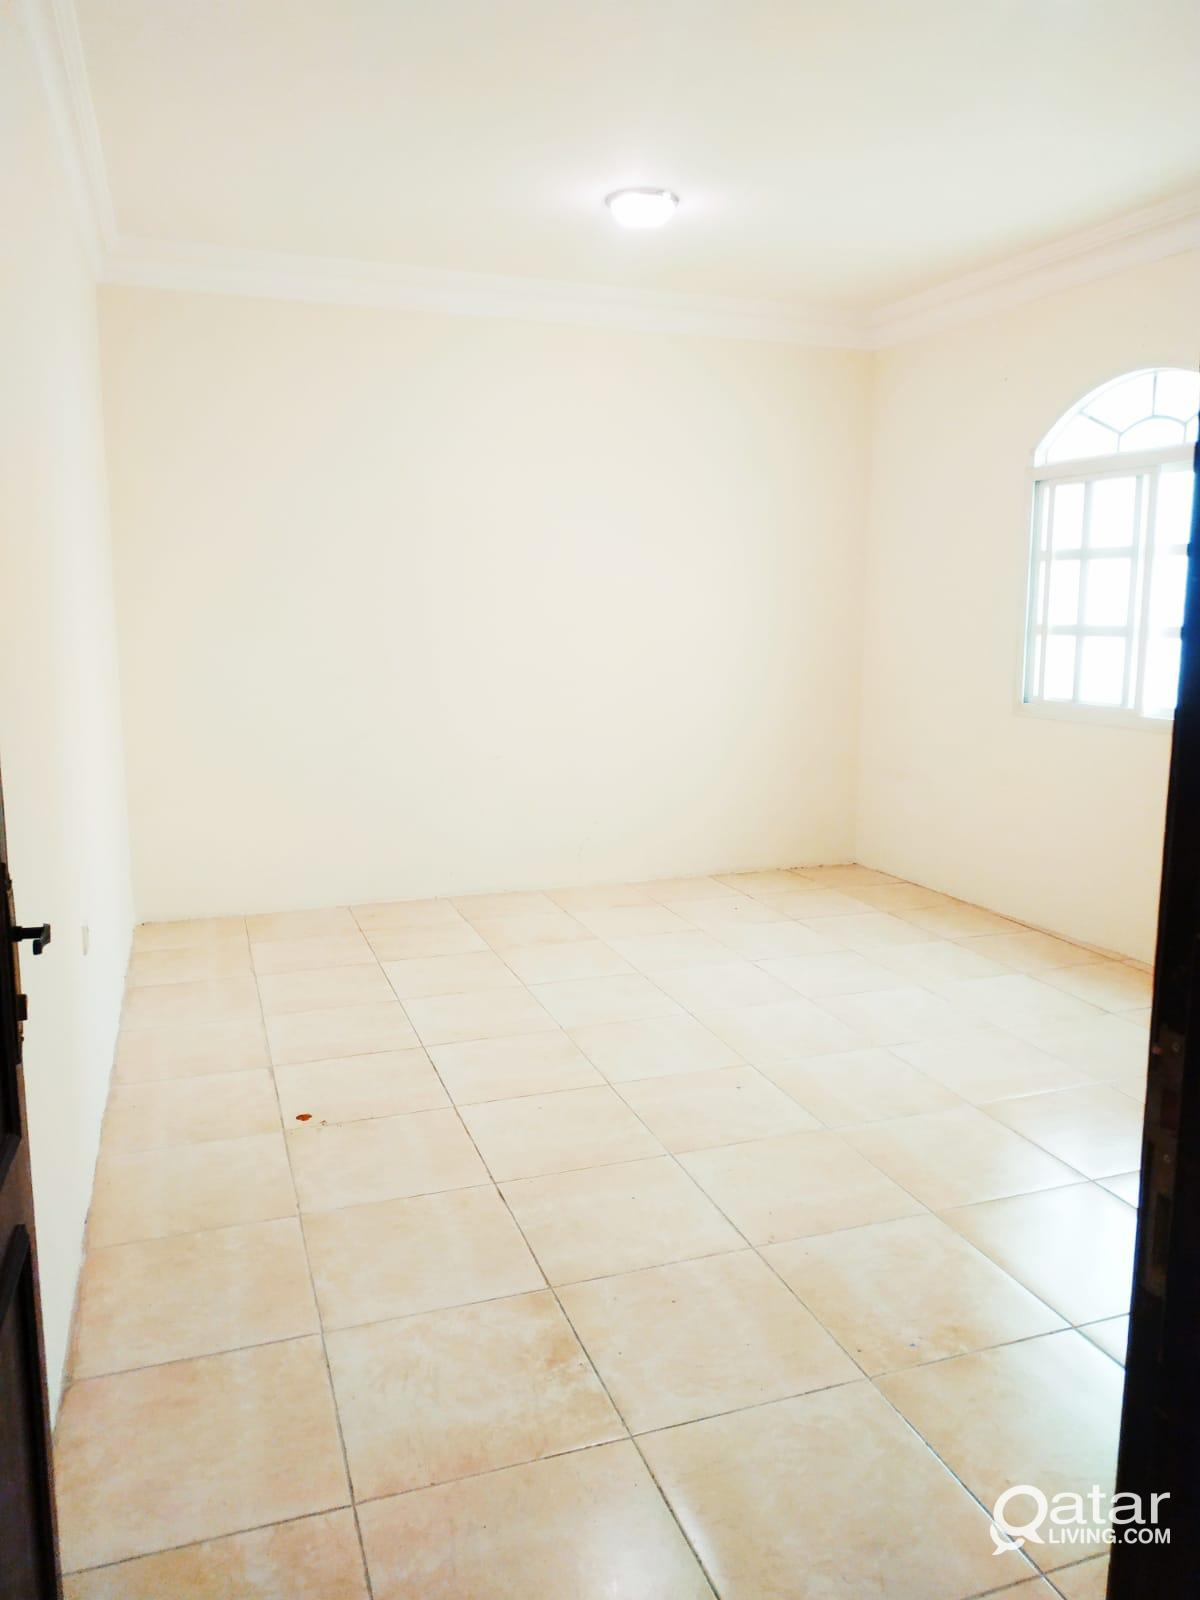 2Bedrooms Unfurnished In Madinat Khalifa South Clo